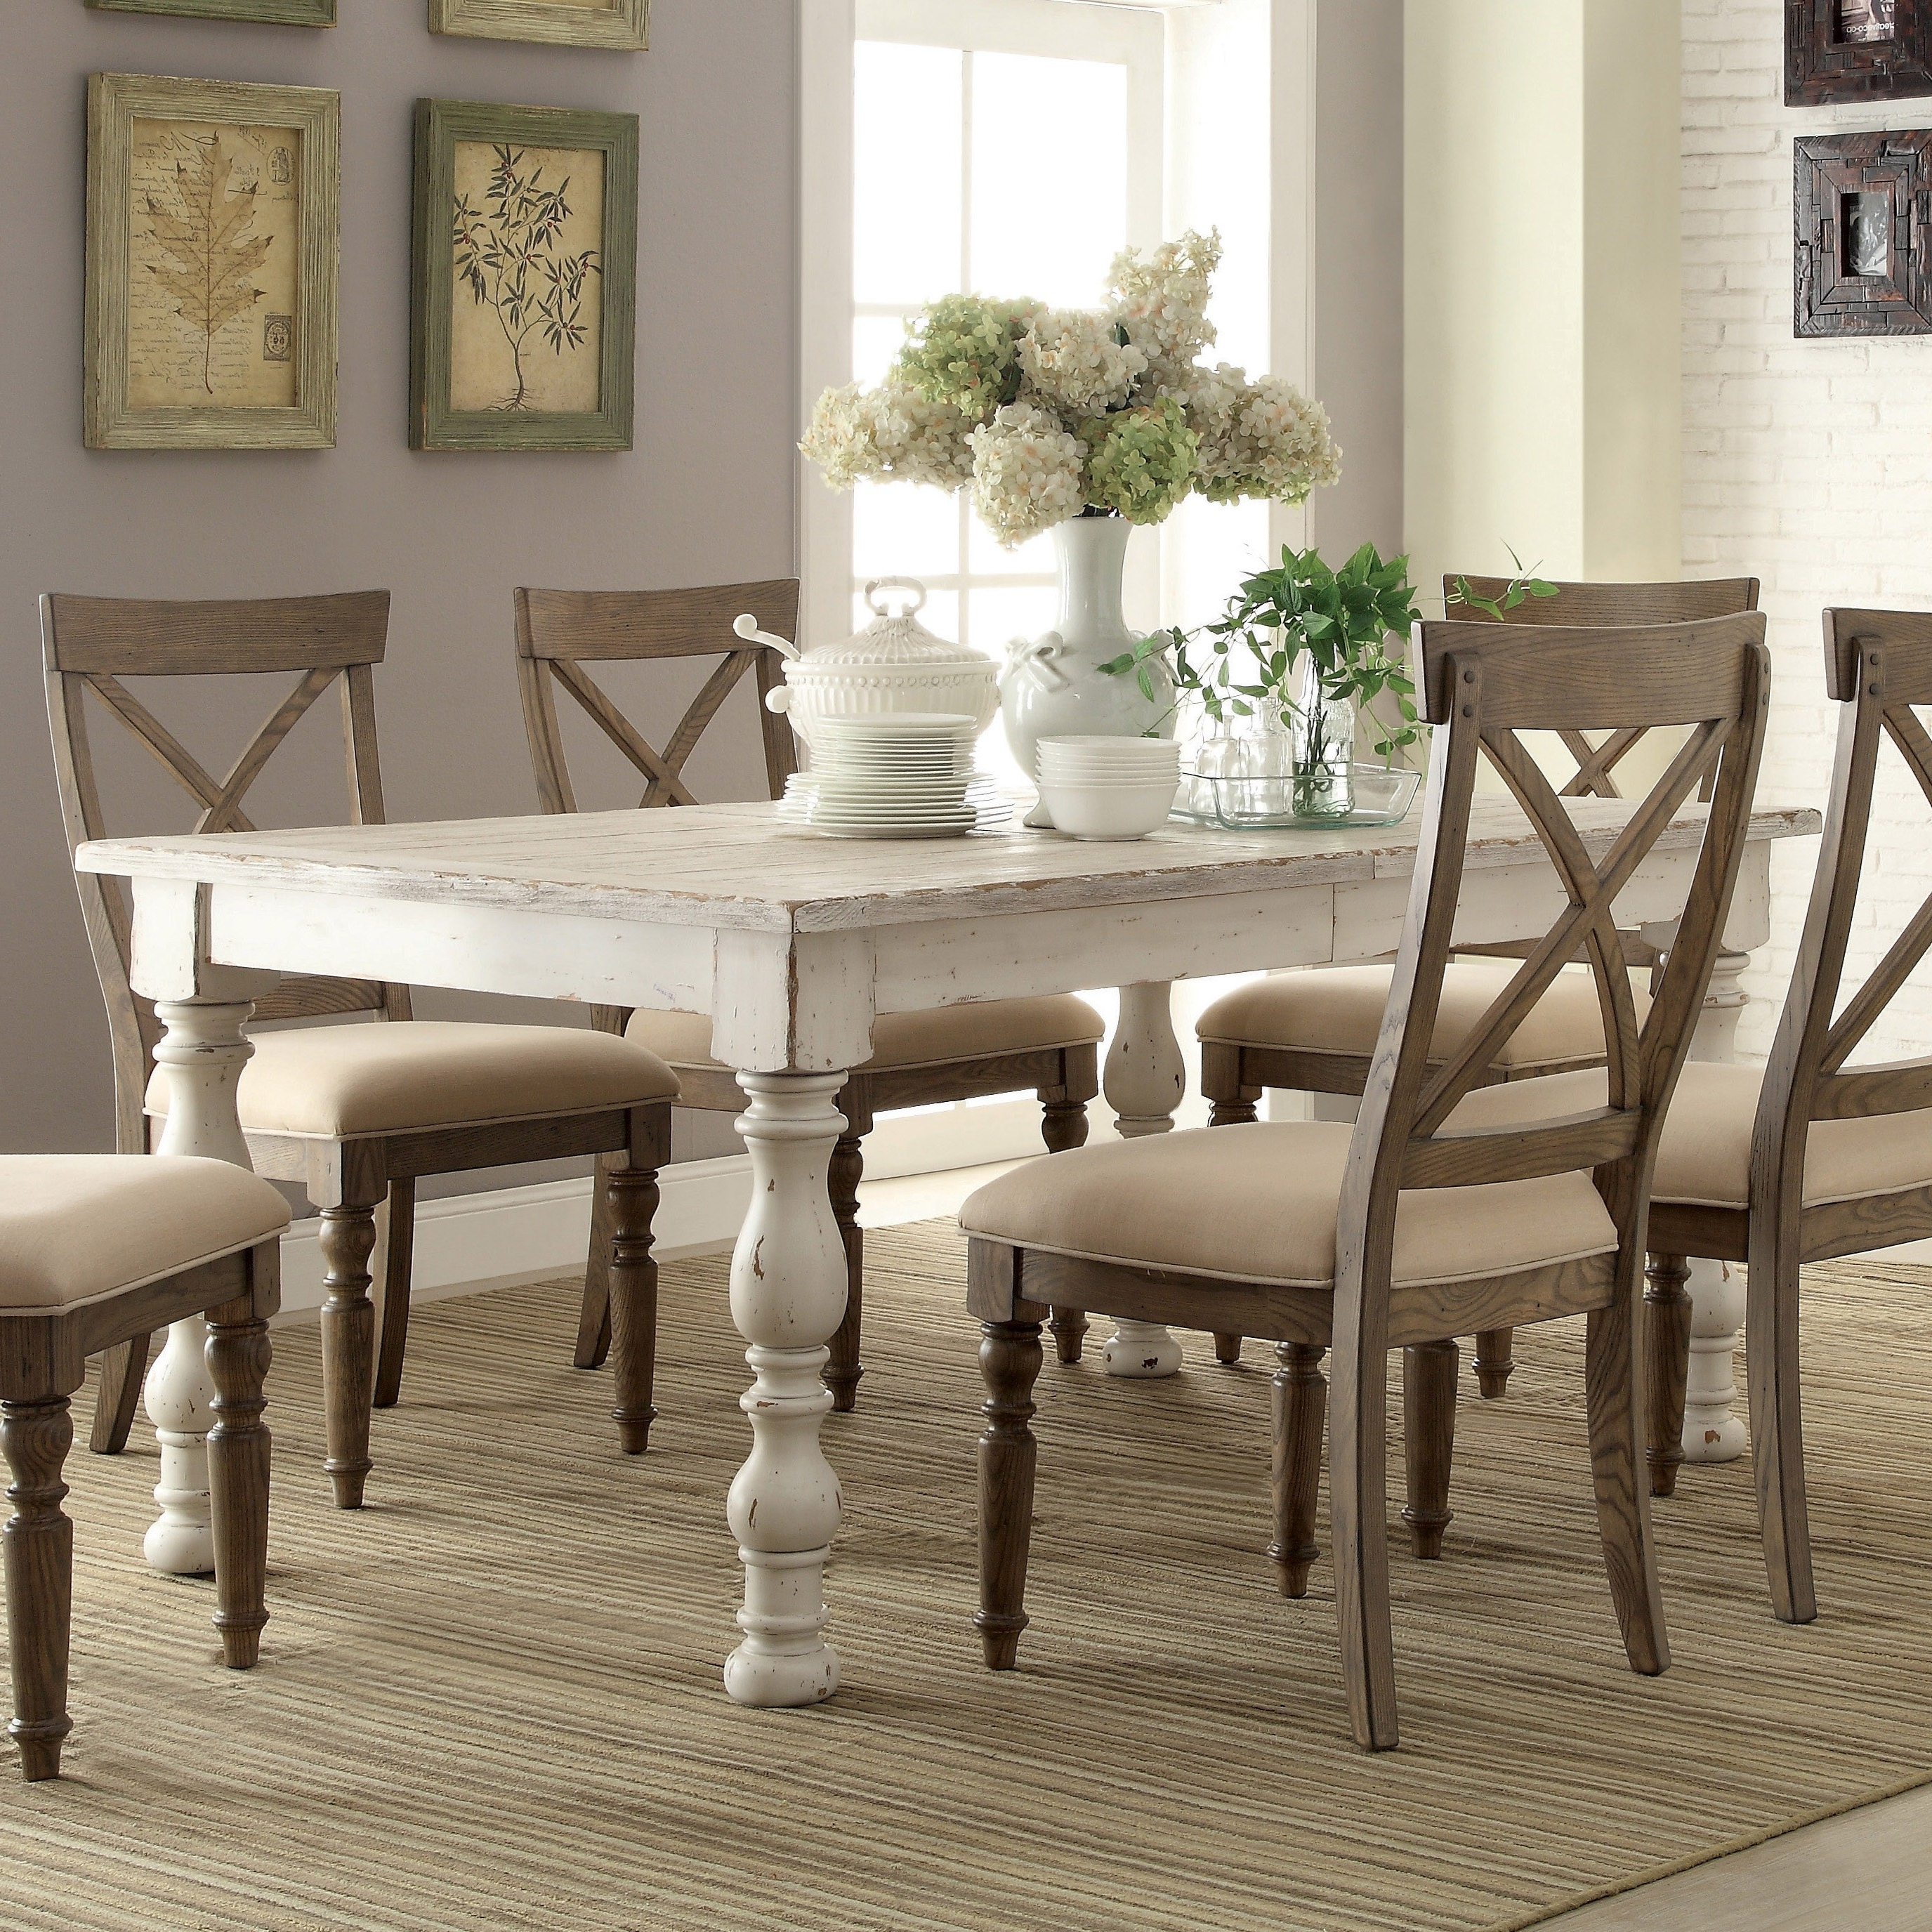 Humble Abode with Dining Room Tables And Chairs